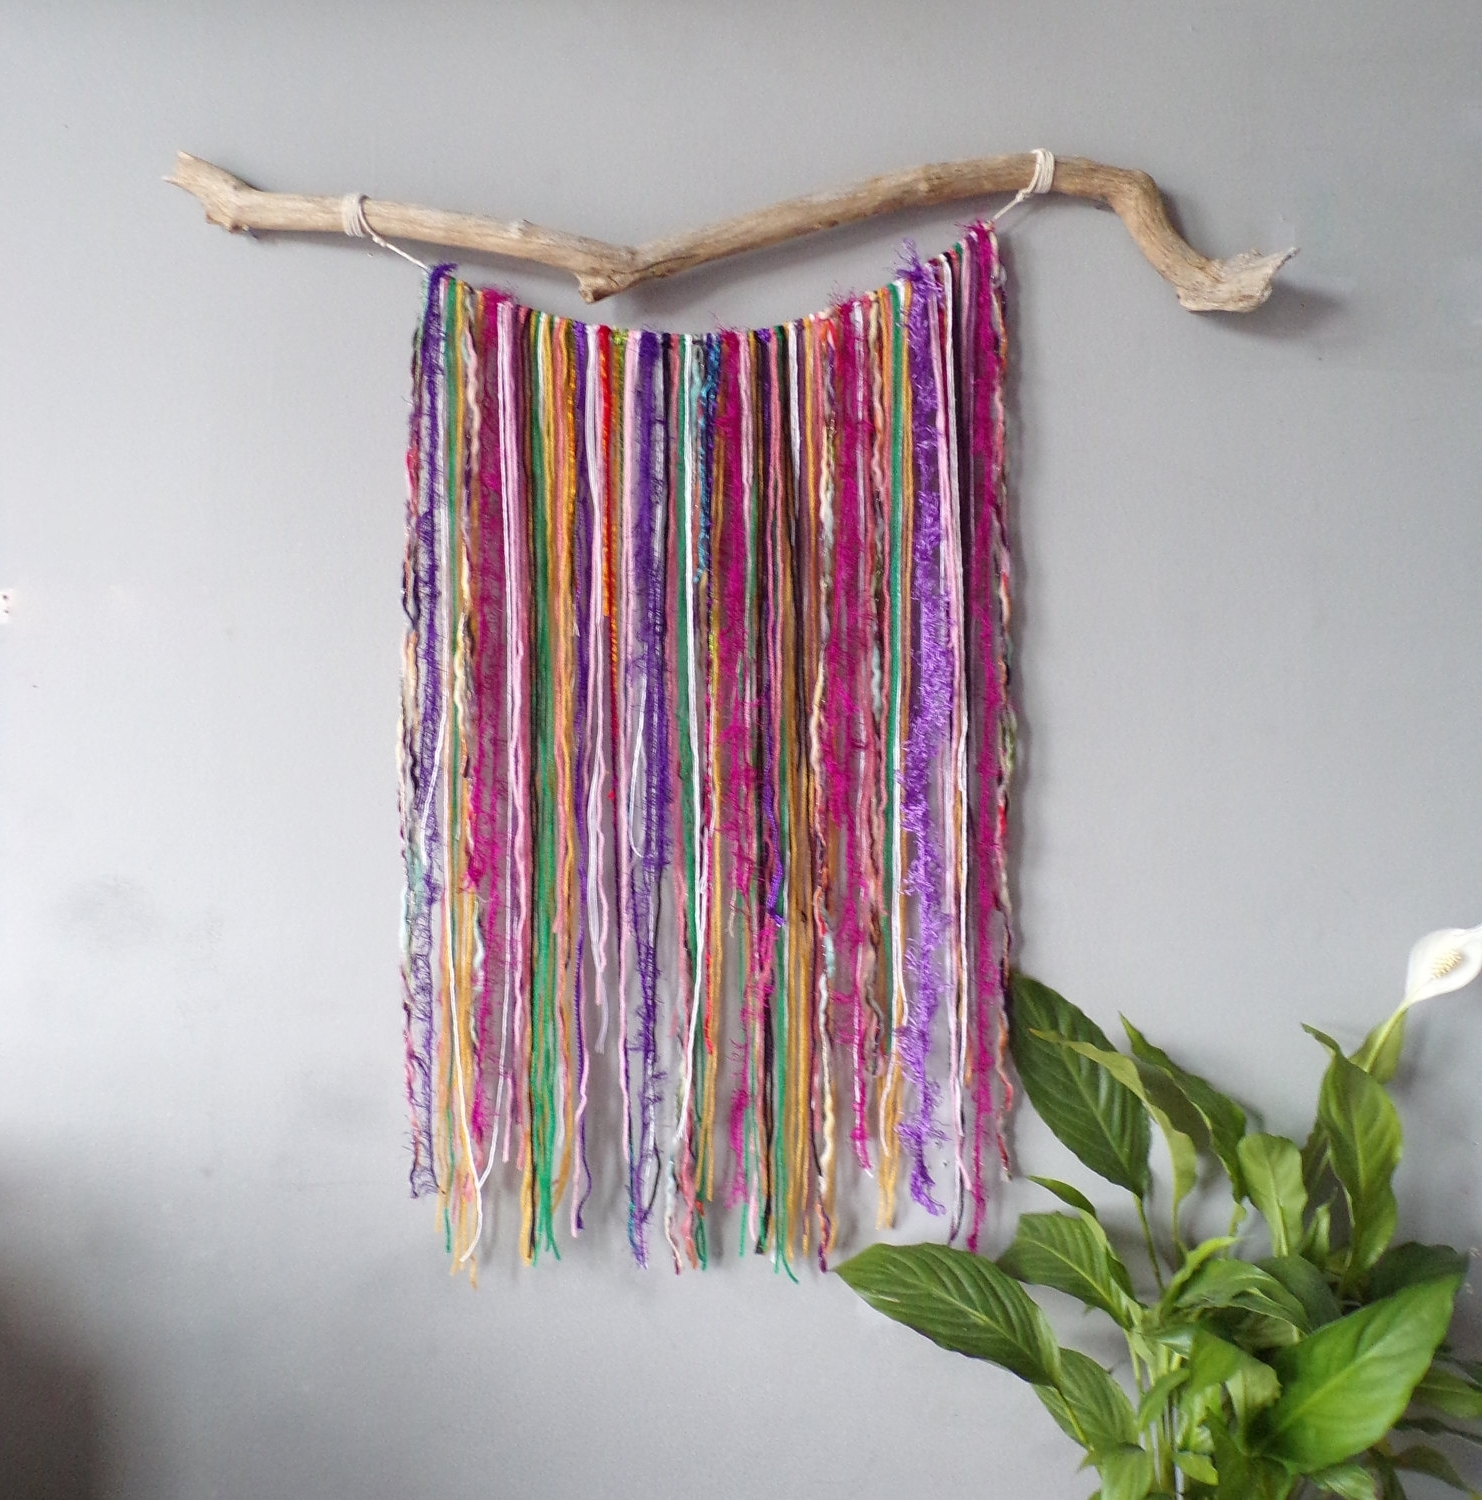 Fashionable Large Yarn Wall Hanging Wall Decor Boho Wall Art Bohemian Decor Intended For Yarn Wall Art (View 7 of 20)